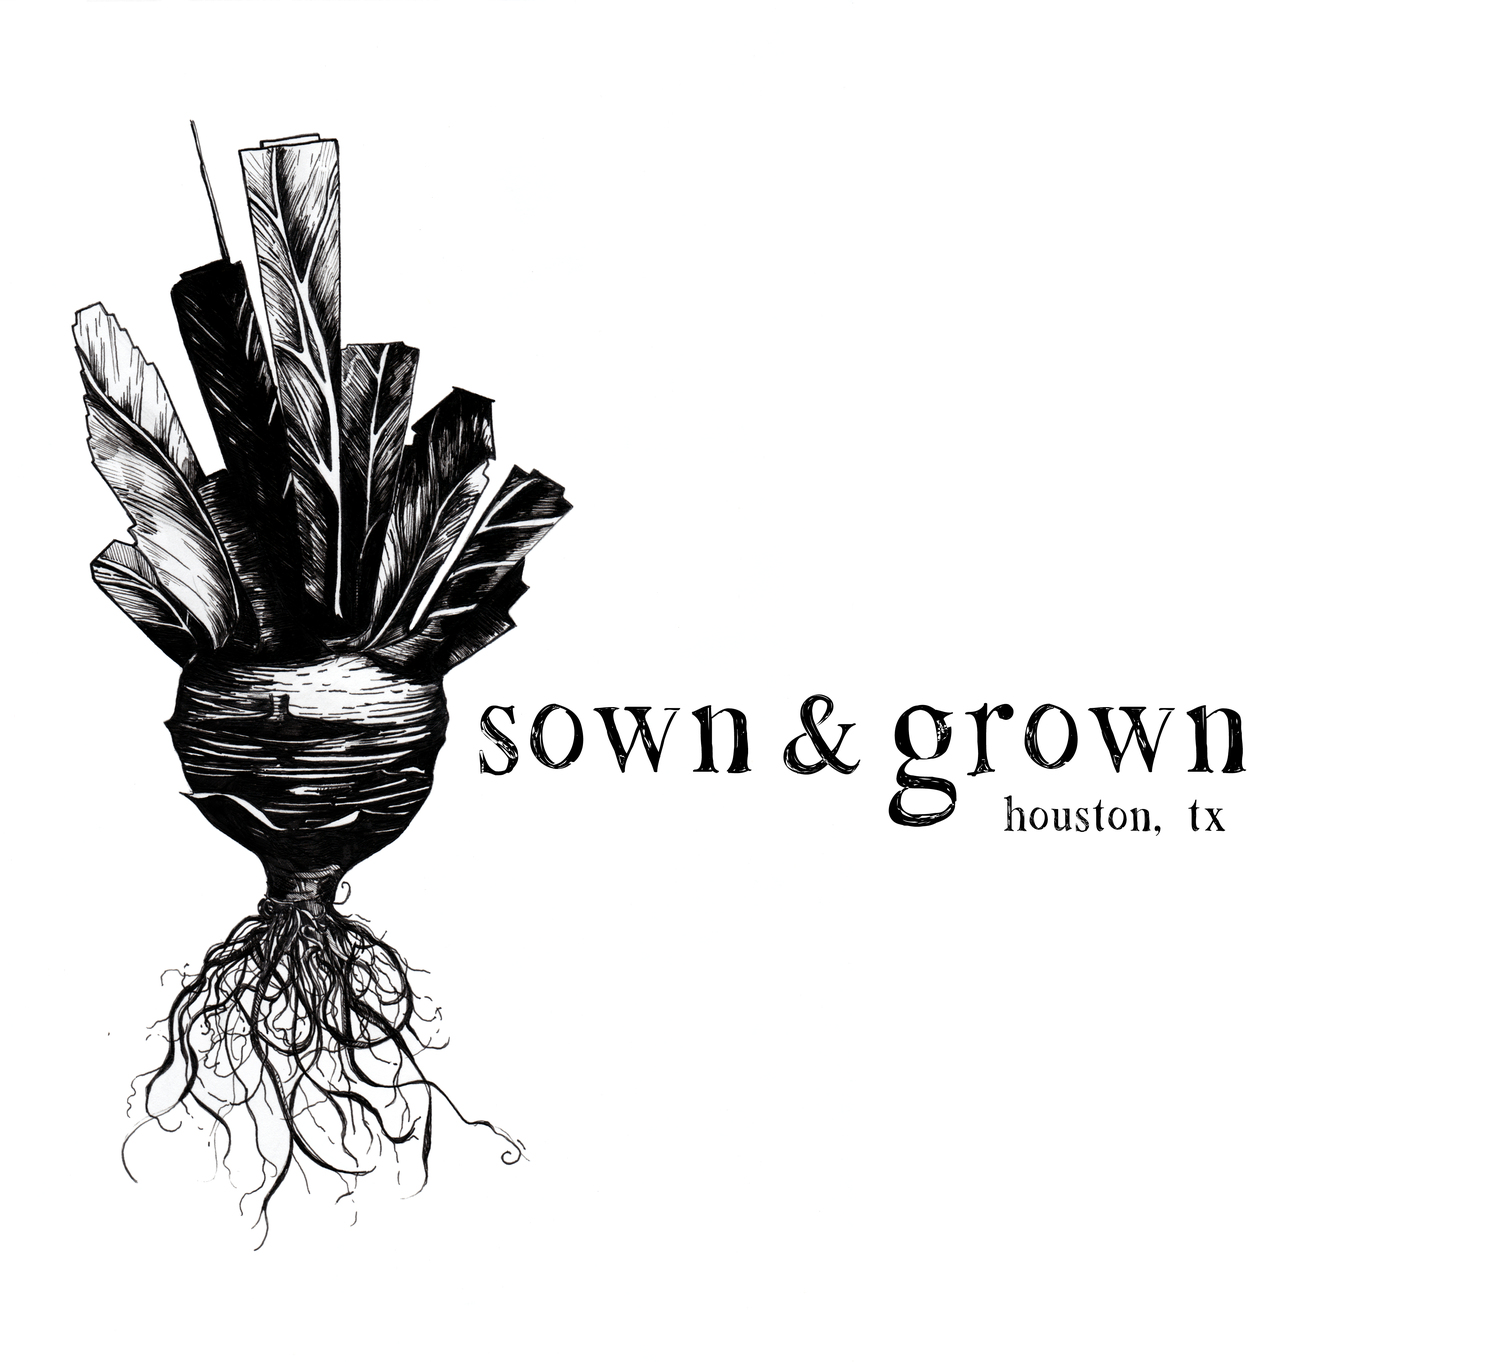 Sown & Grown